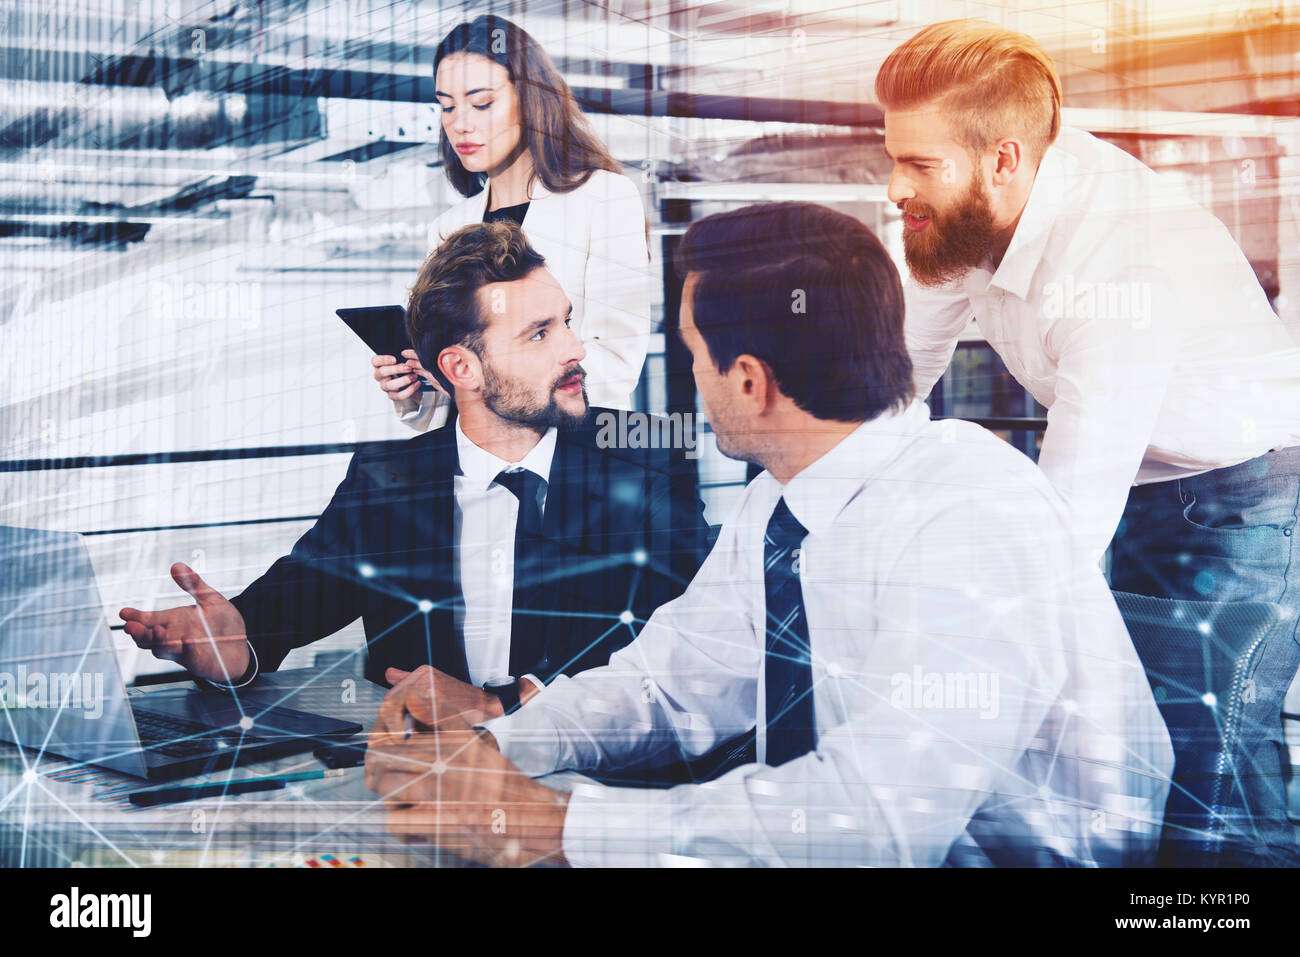 Businessperson in office connected on internet network. concept of partnership and teamwork Stock Photo